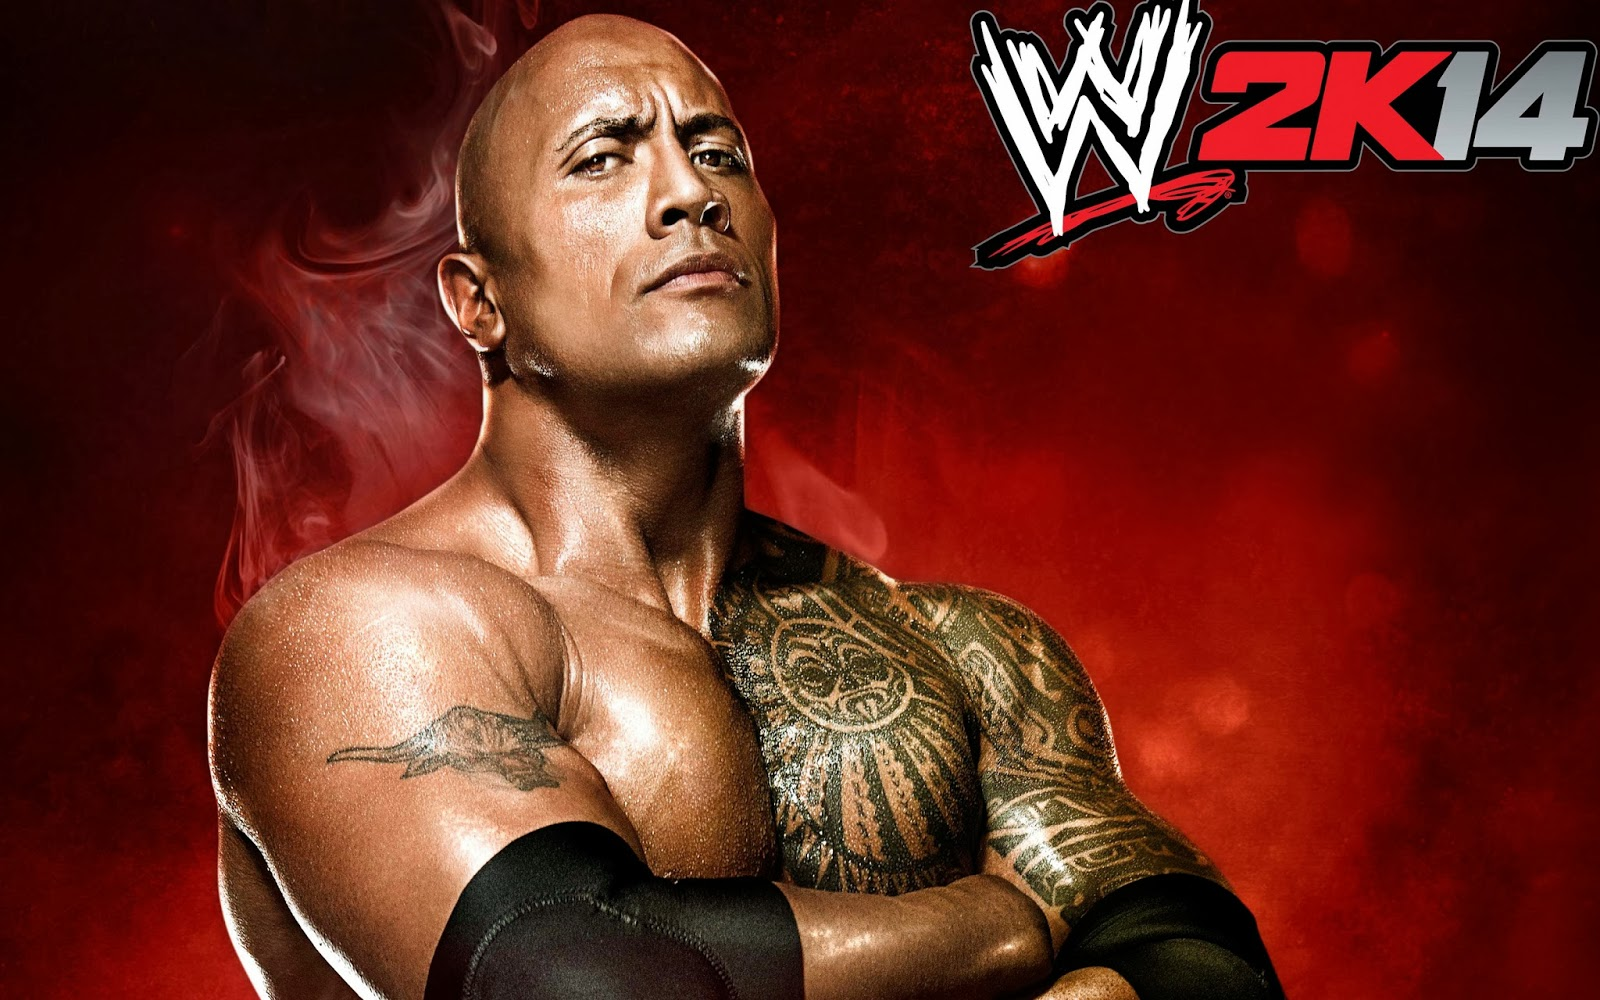 Images Of The Rock Wwe: The Rock Hd Wallpapers Free Download